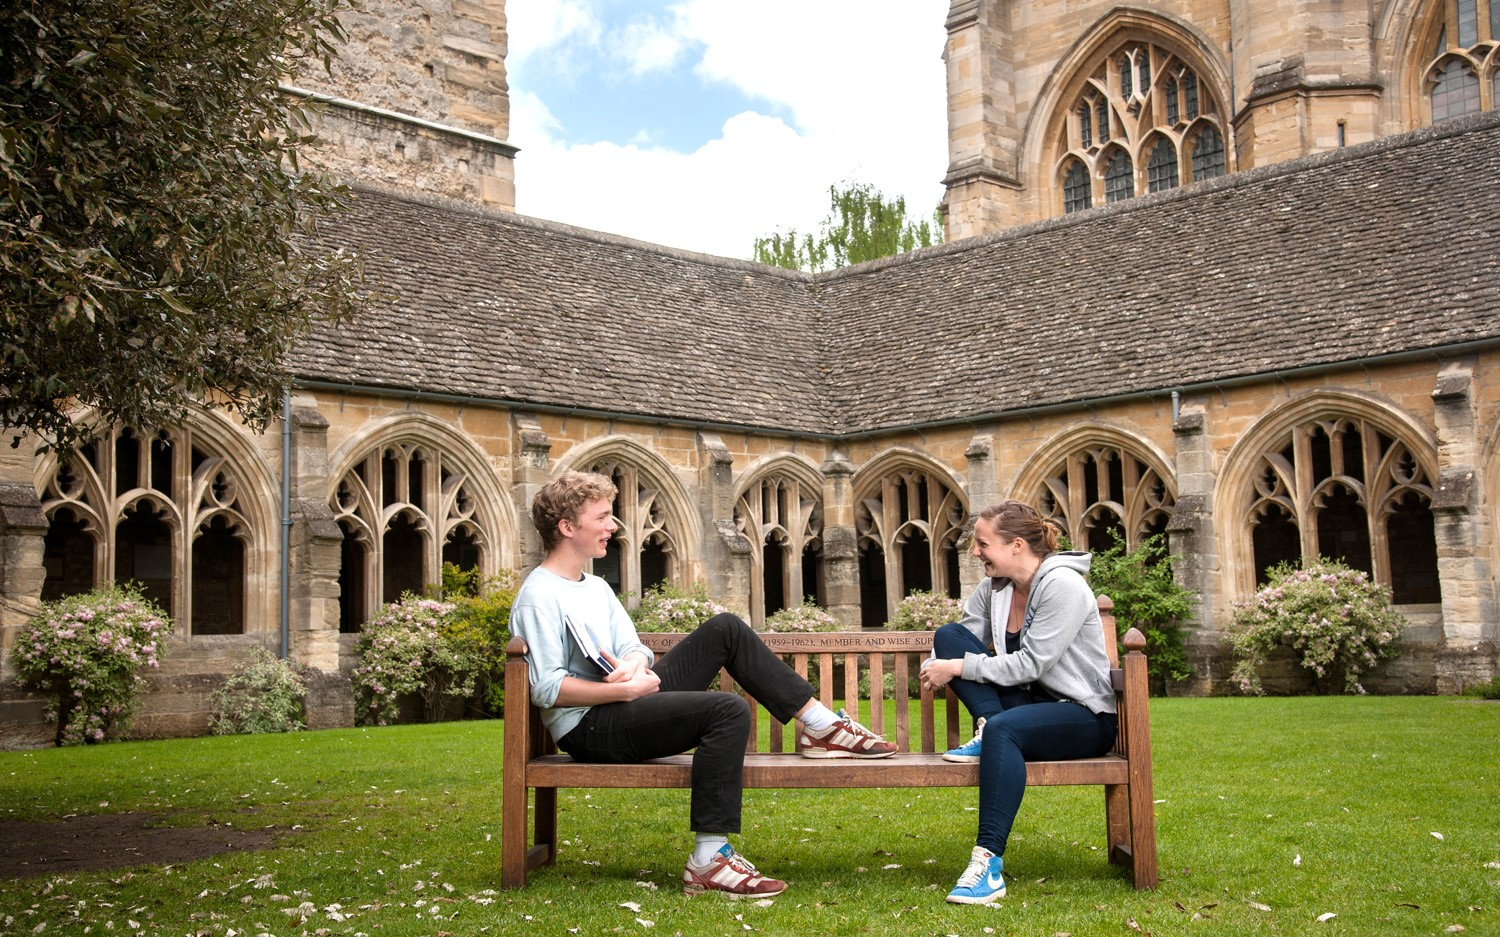 Students sit in New College cloisters